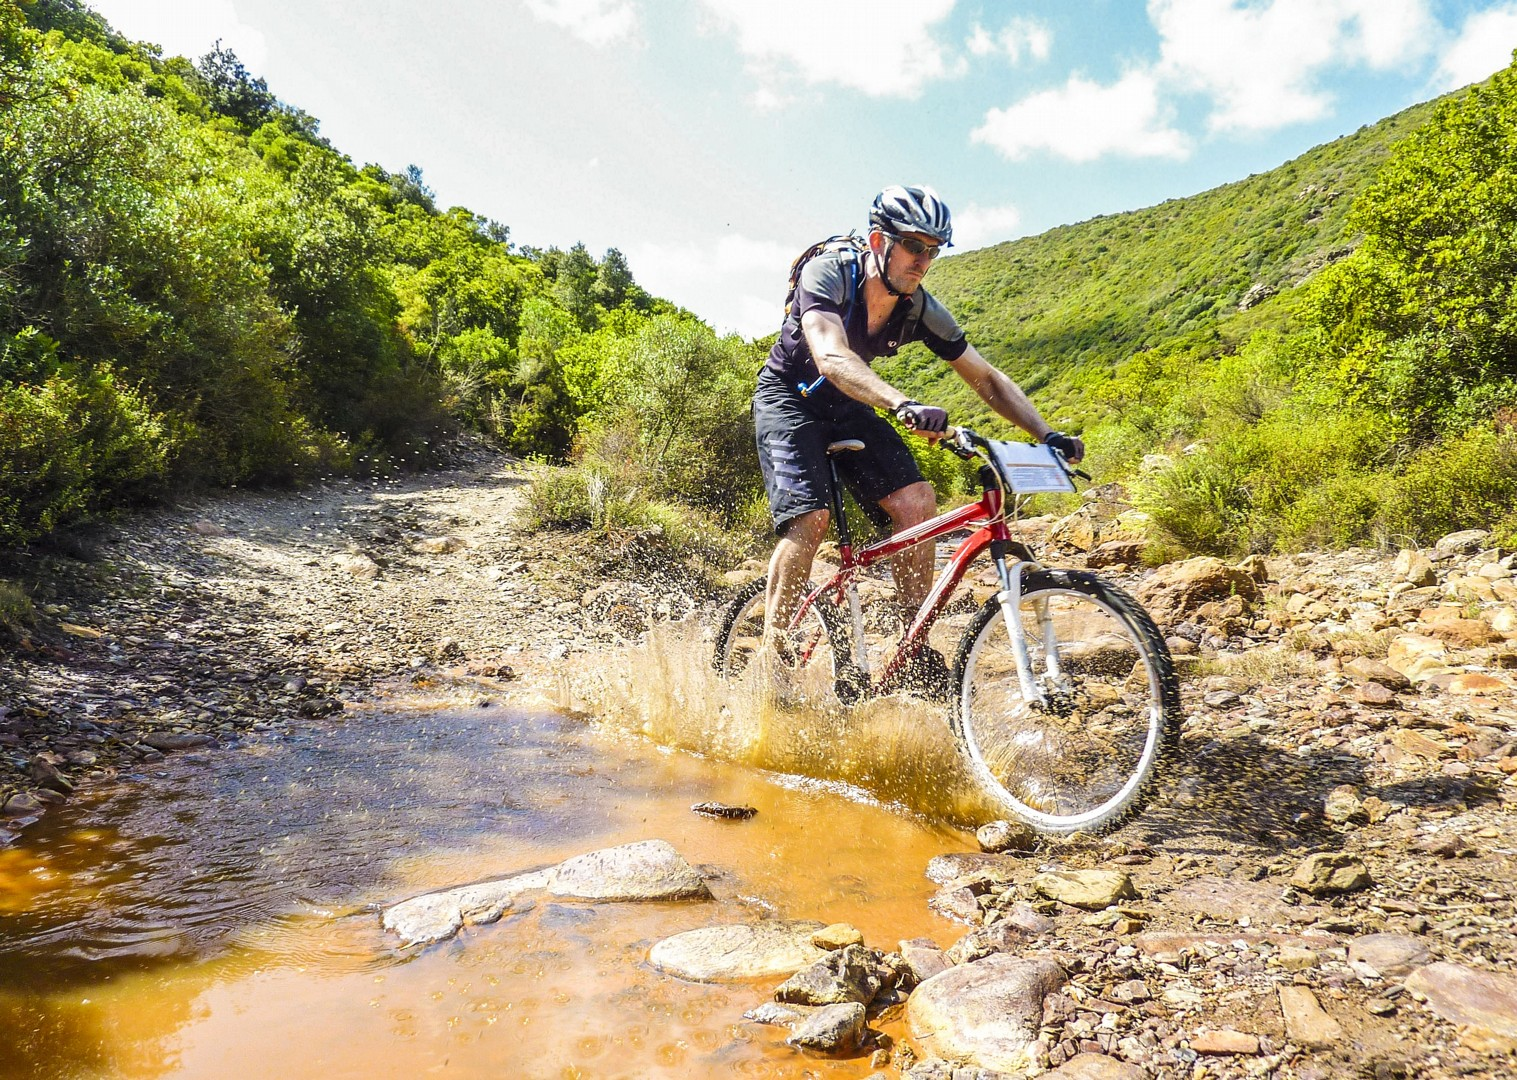 offroad-cycling-adventure-mountain-biking-sardinia-italy.jpg - Italy - Sardinia - Coast to Coast - Self-Guided Mountain Bike Holiday - Italia Mountain Biking